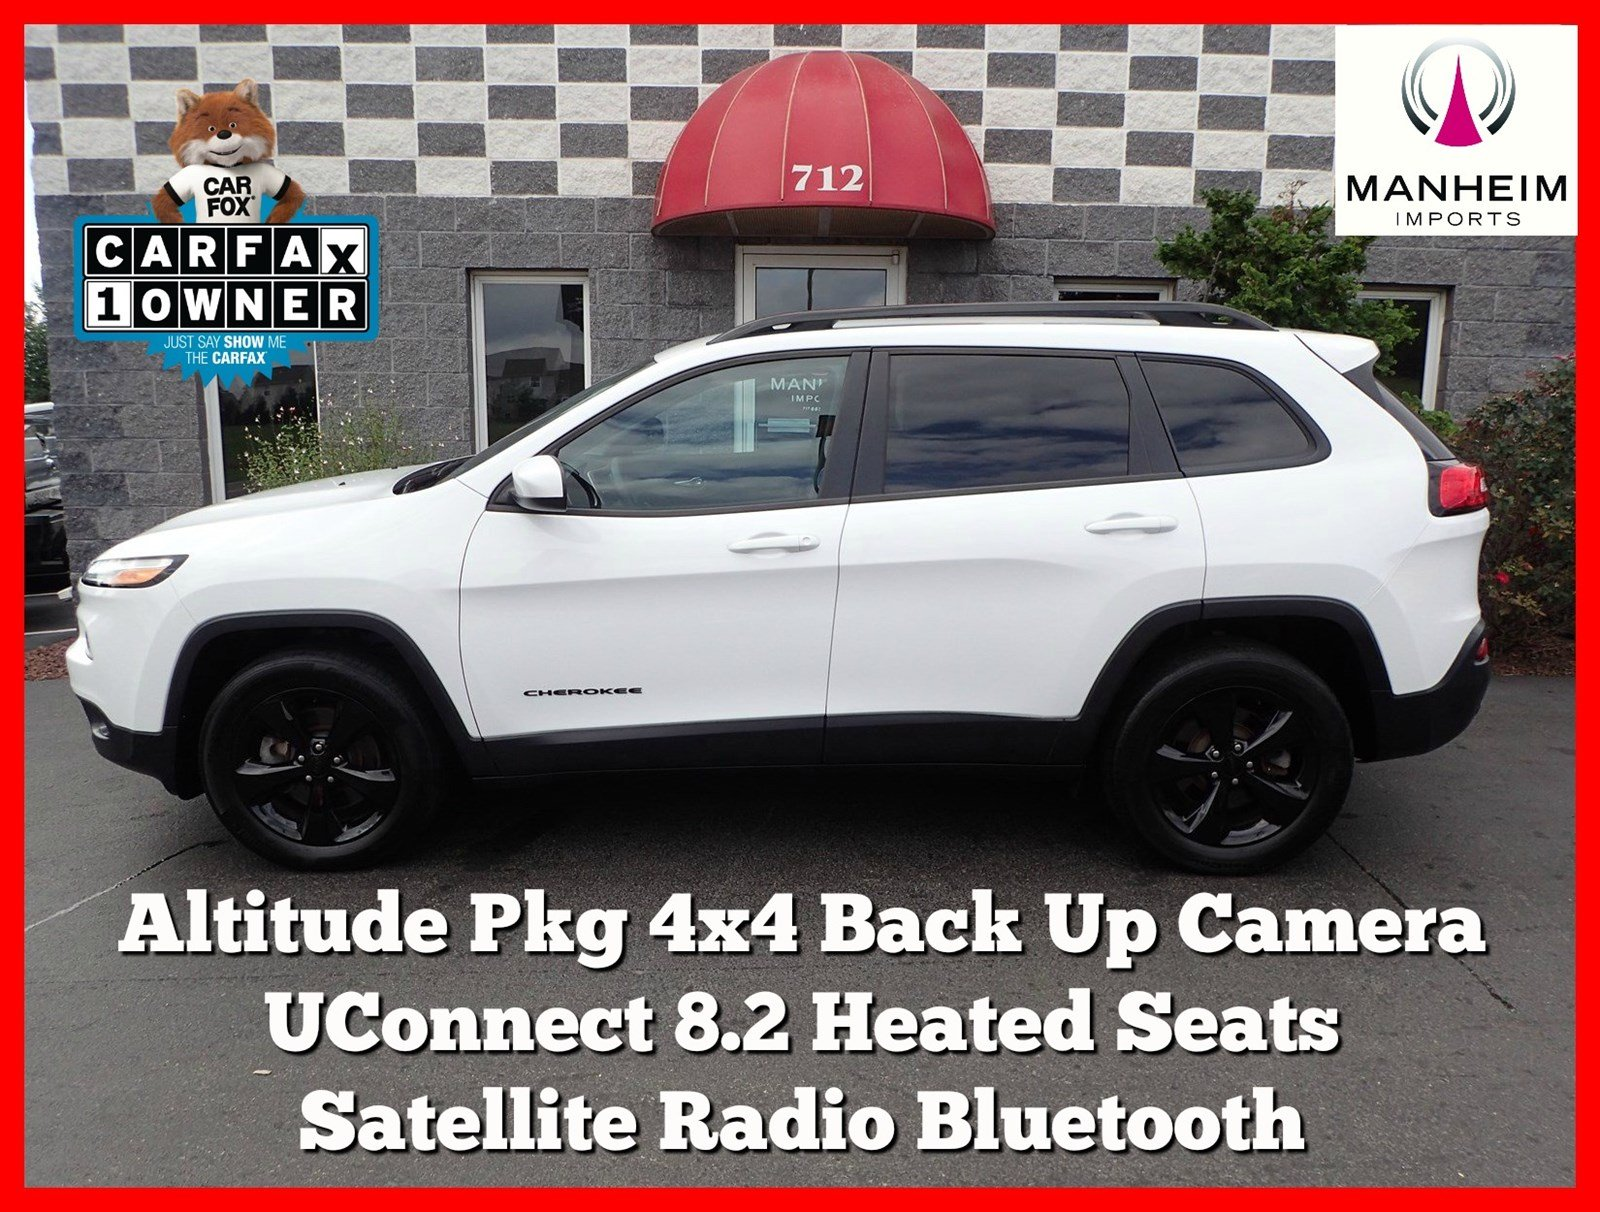 Pre-Owned 2016 Jeep Cherokee Altitude Pkg 4x4